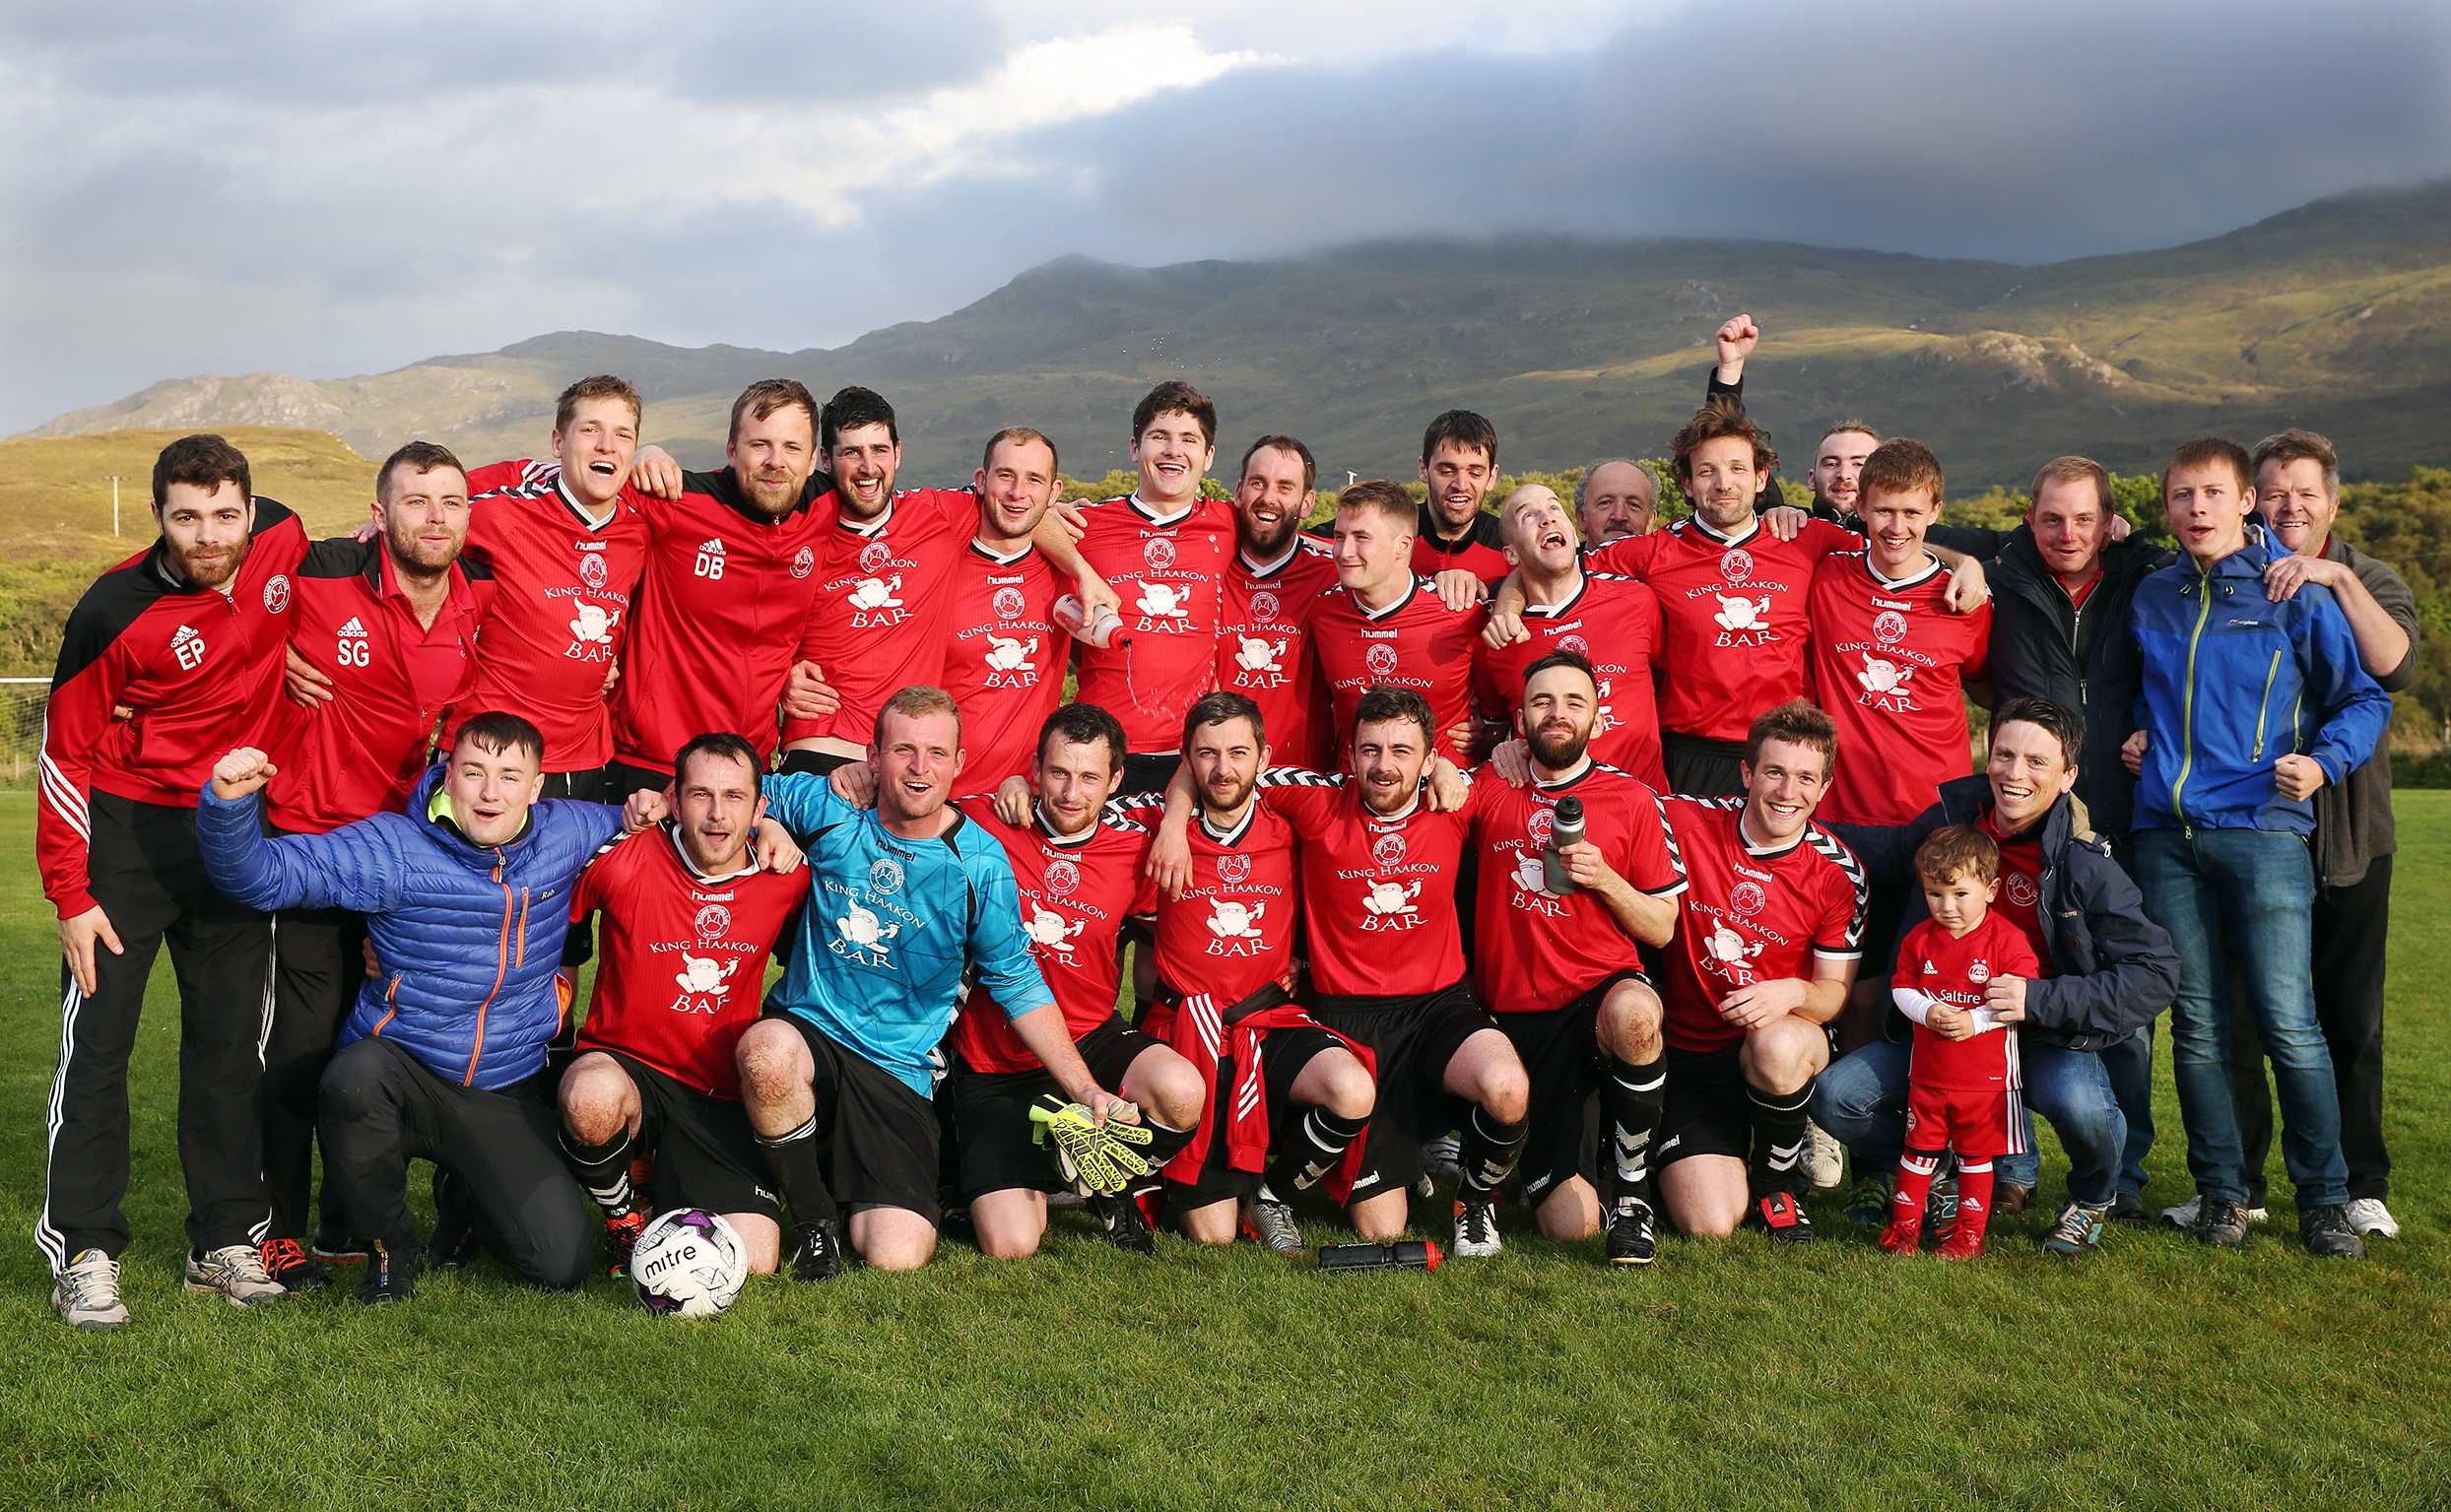 KYLEAKIN FC 17 - LEAGUE WINNERS